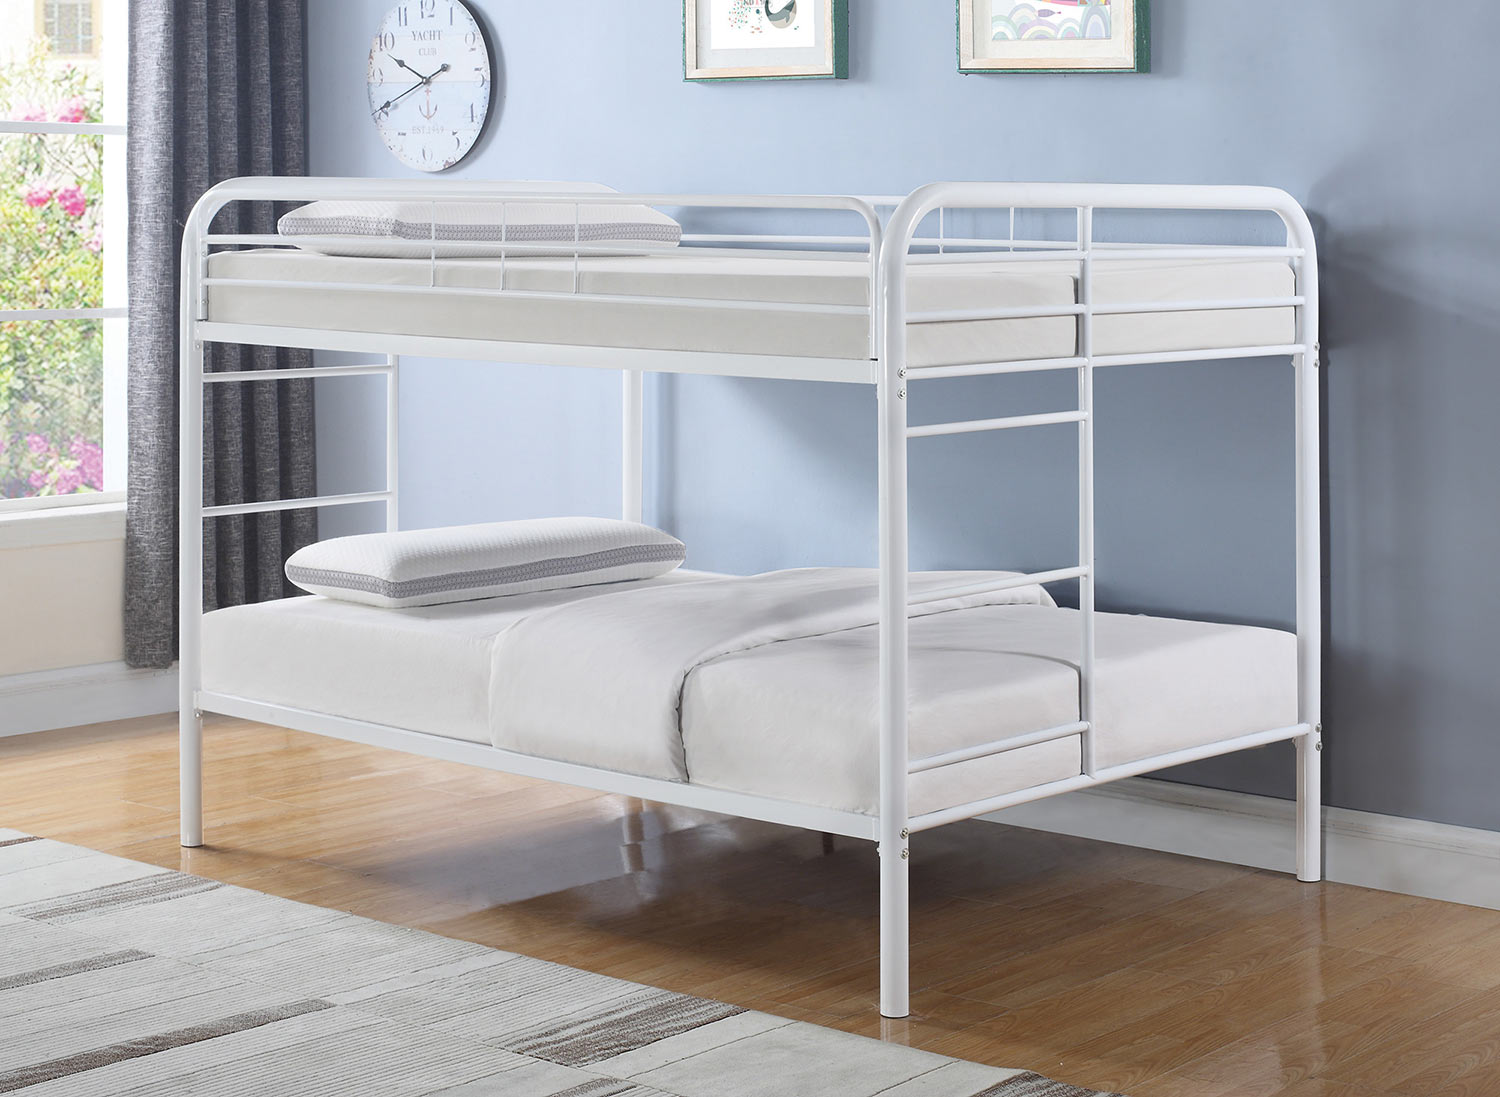 Coaster Morgan Full/Full Size Bunk Bed - White